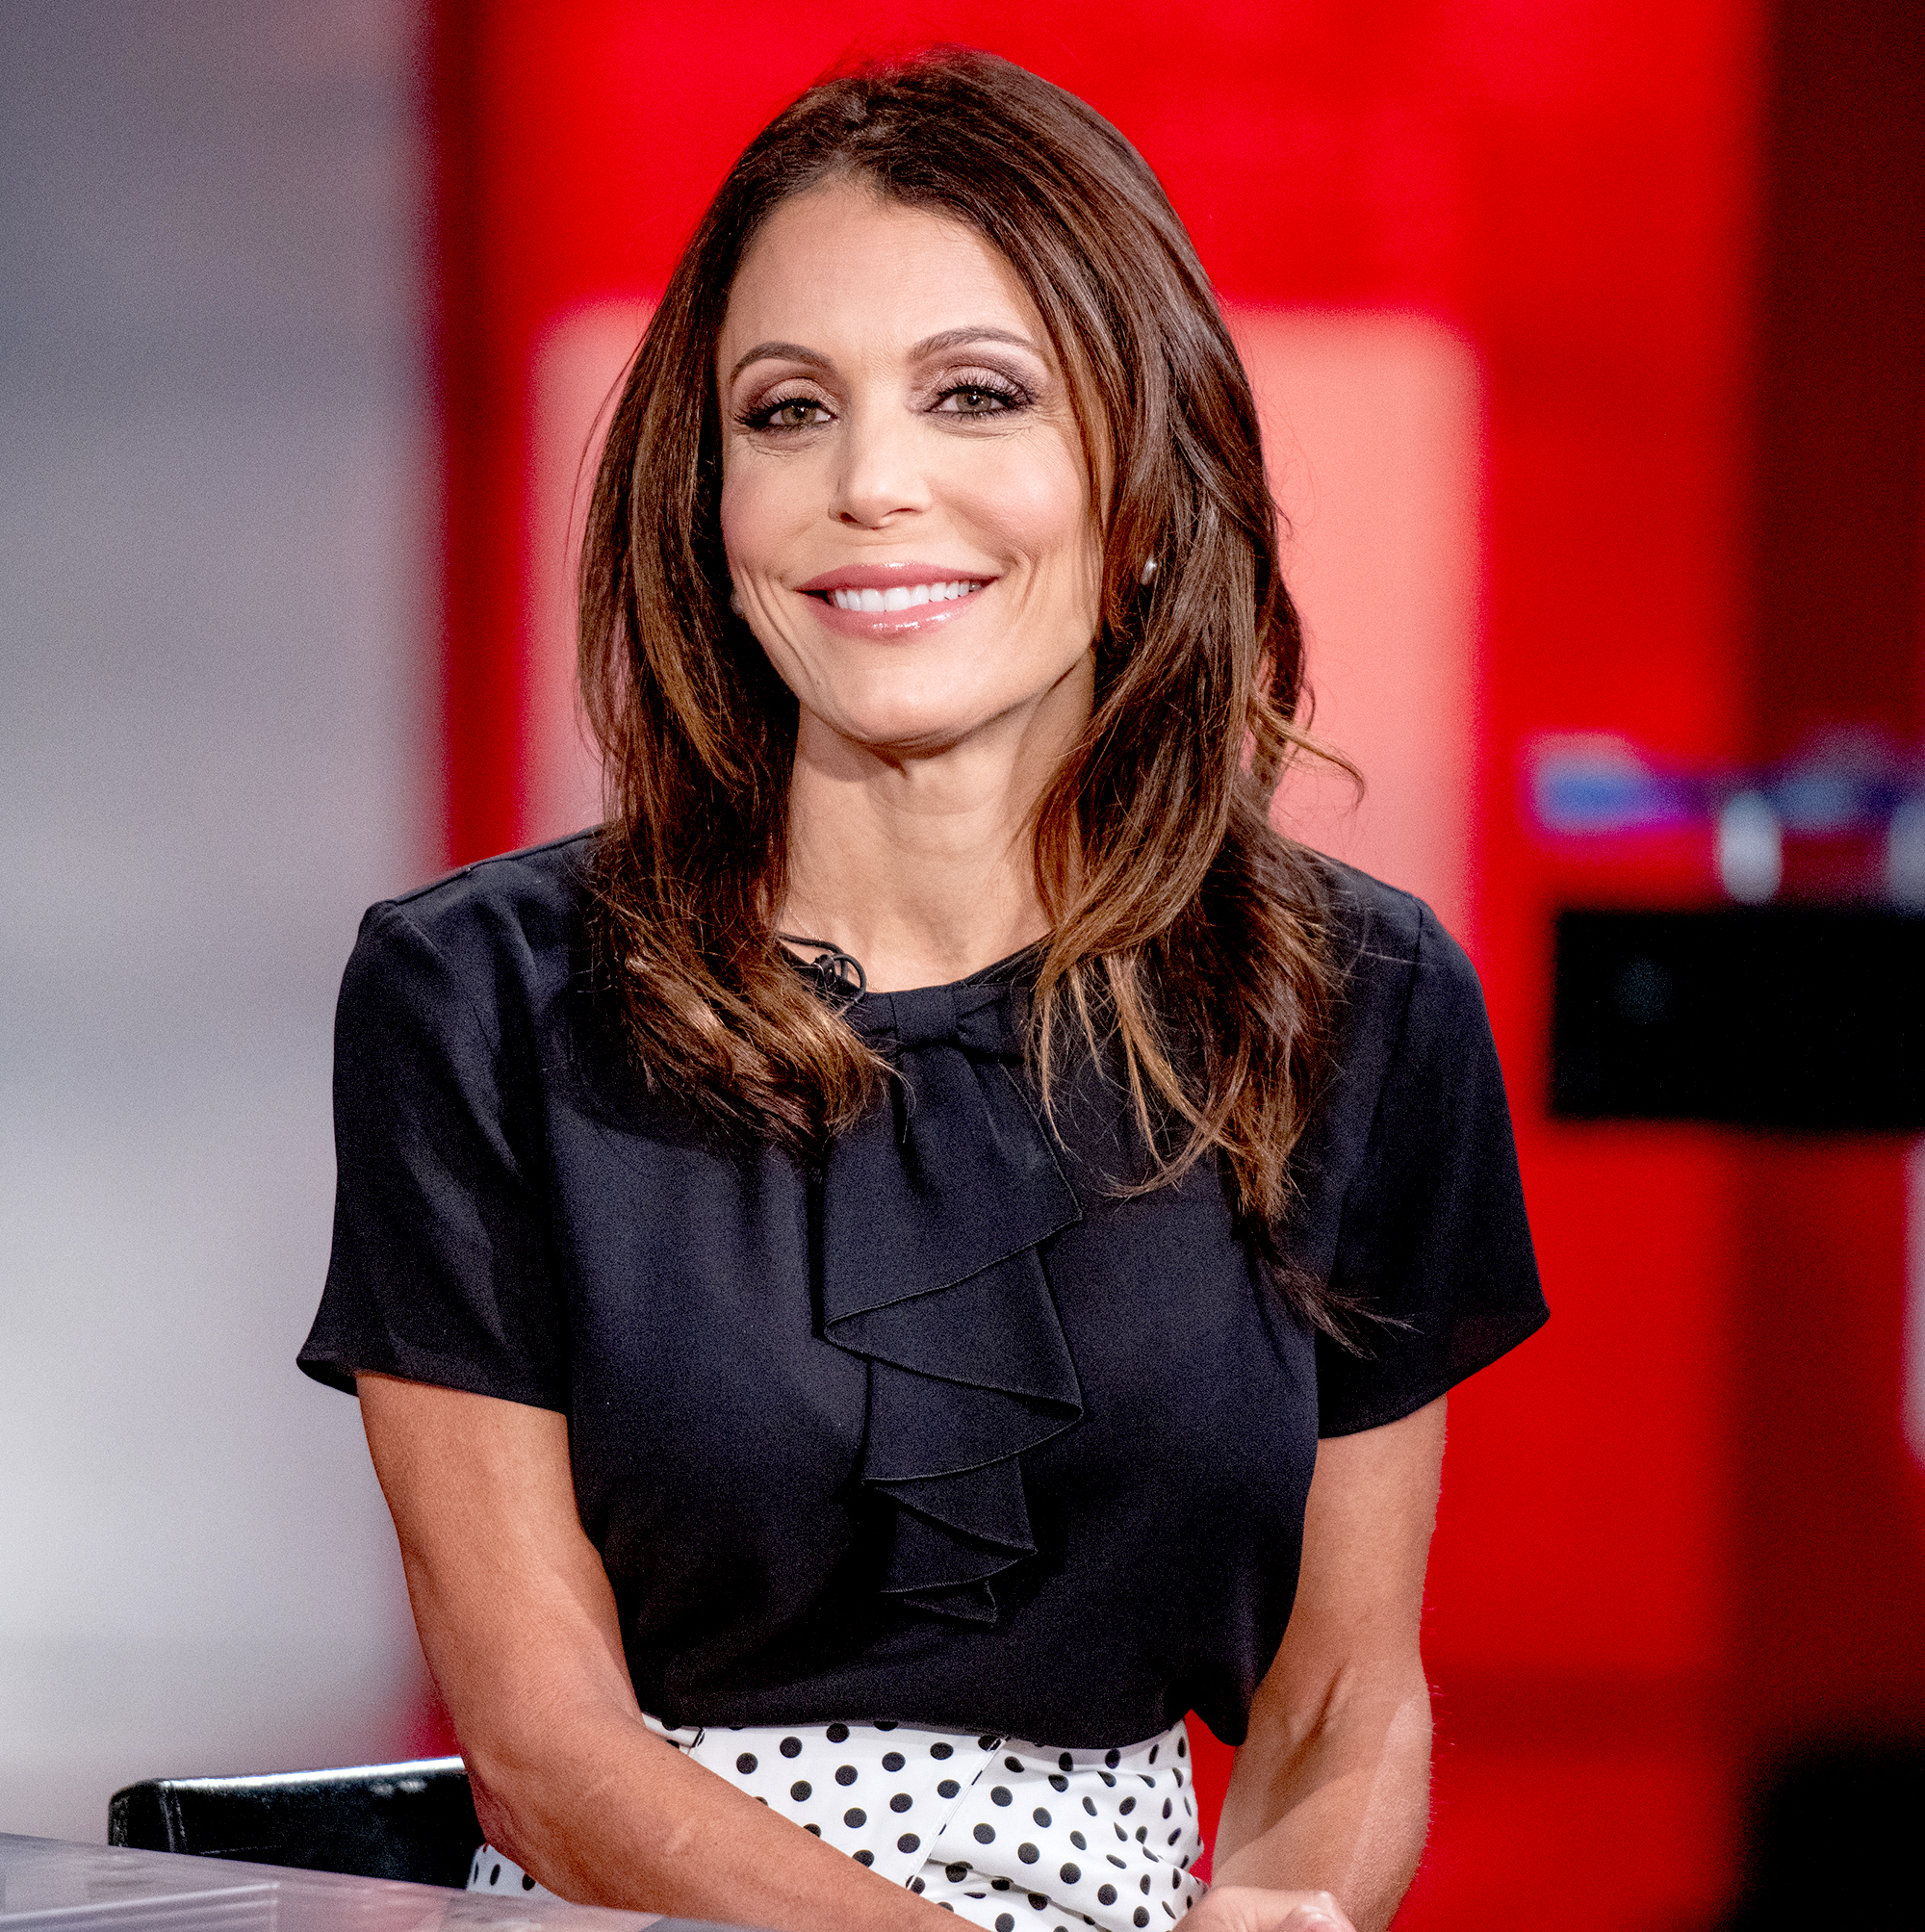 Bethenny-Frankel-fish-allergy-plane - Bethenny Frankel visits Fox Business Network at Fox Business Network to discuss Hurricane Florence Studios on September 14, 2018 in New York City.